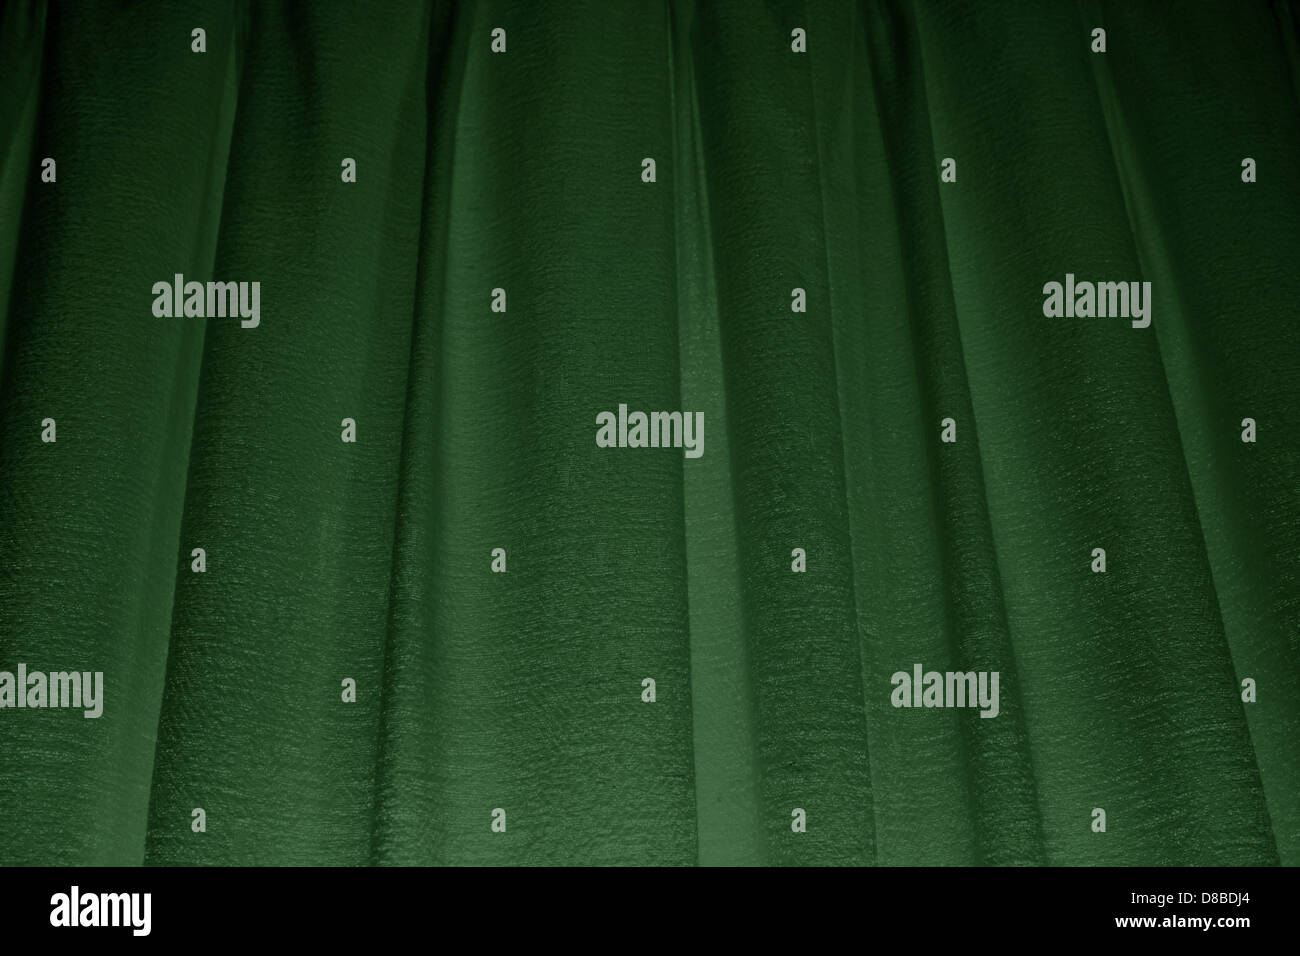 Forest green curtains texture stock photo royalty free for Forest green curtains drapes